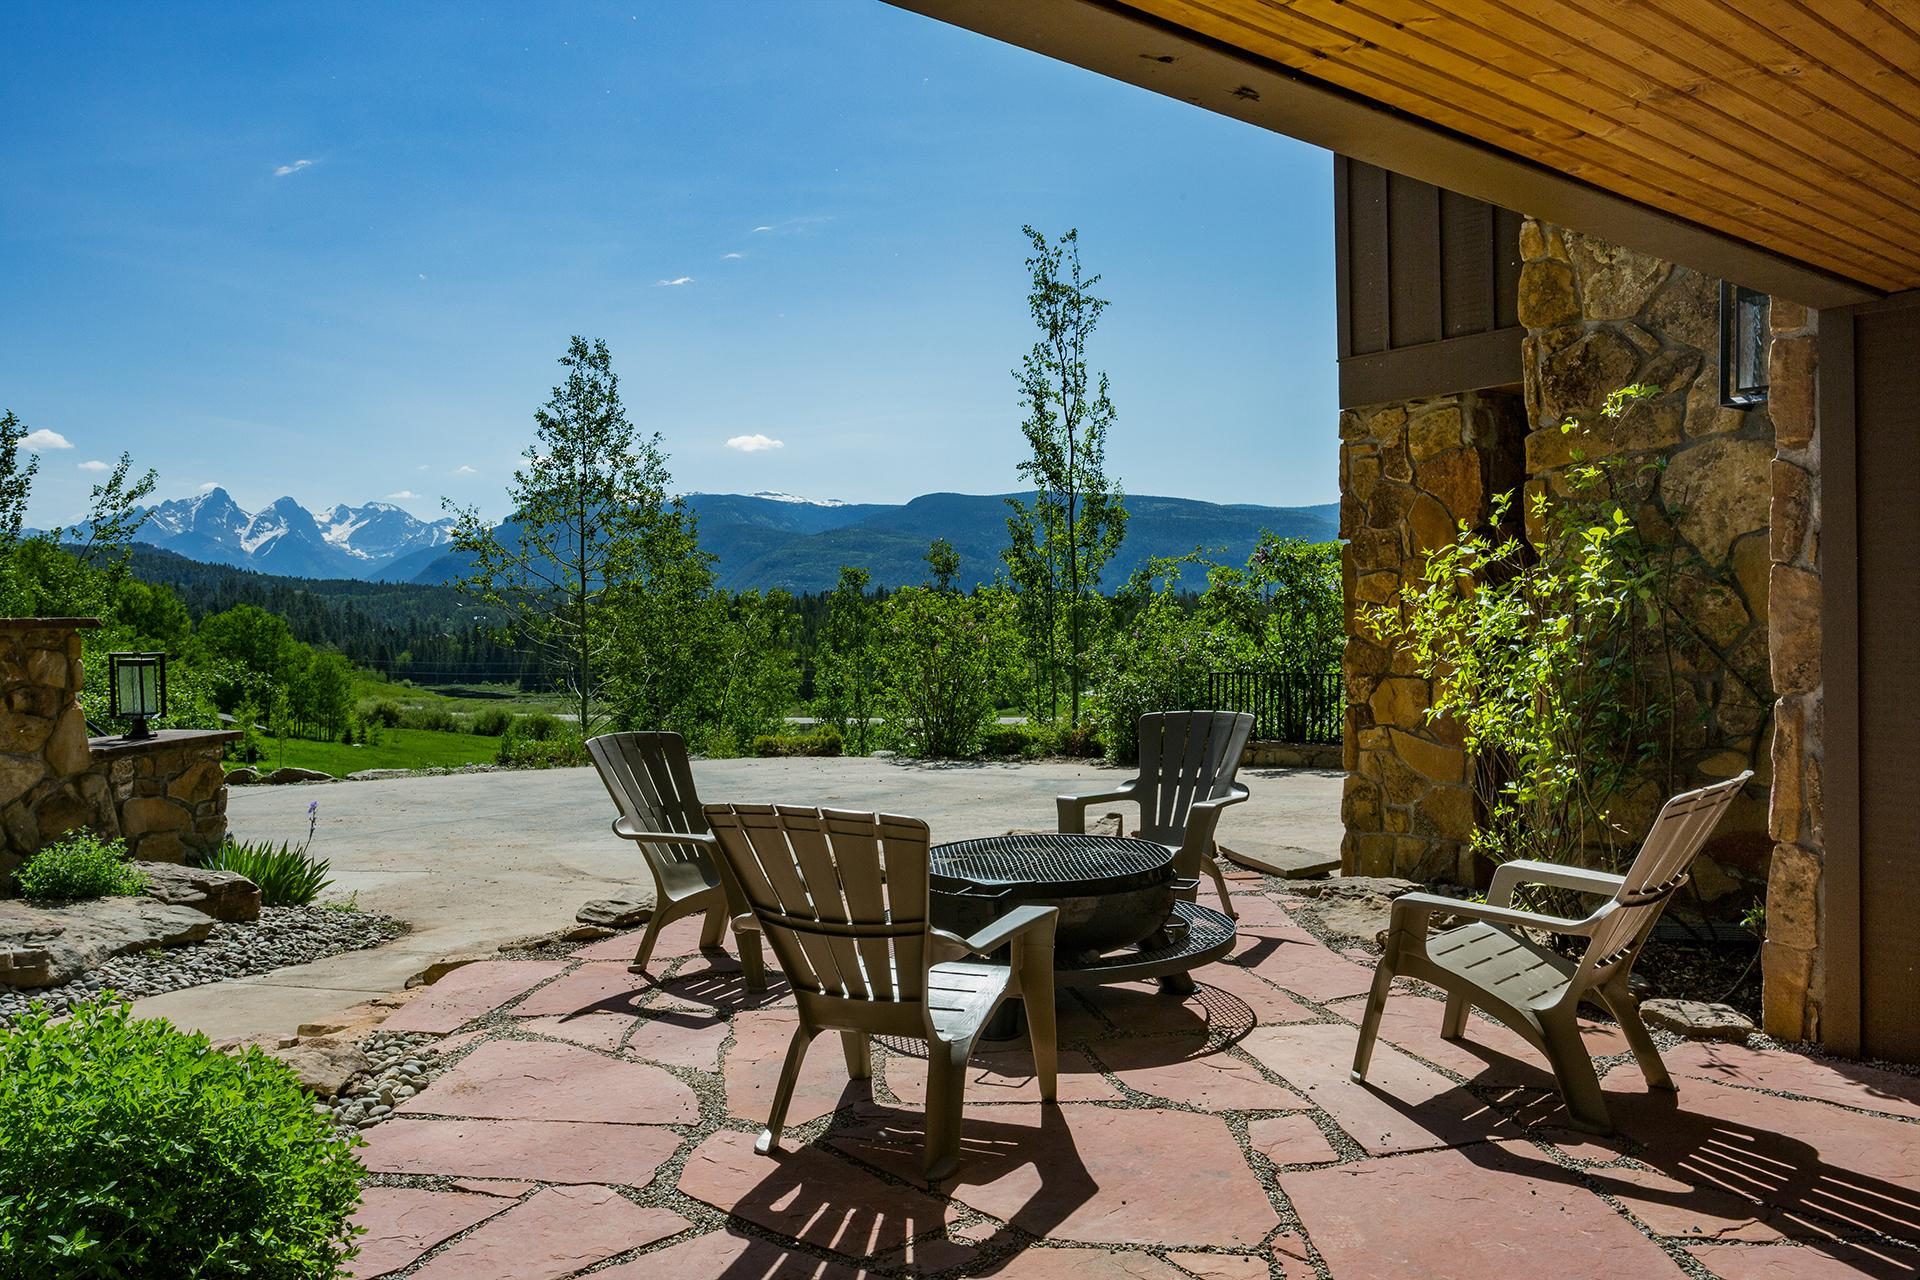 Newly Renovated and Furnished Luxury Home - Private Hot Tub - Unbeatable Views - 3 Miles to Purgatory Ski Resort